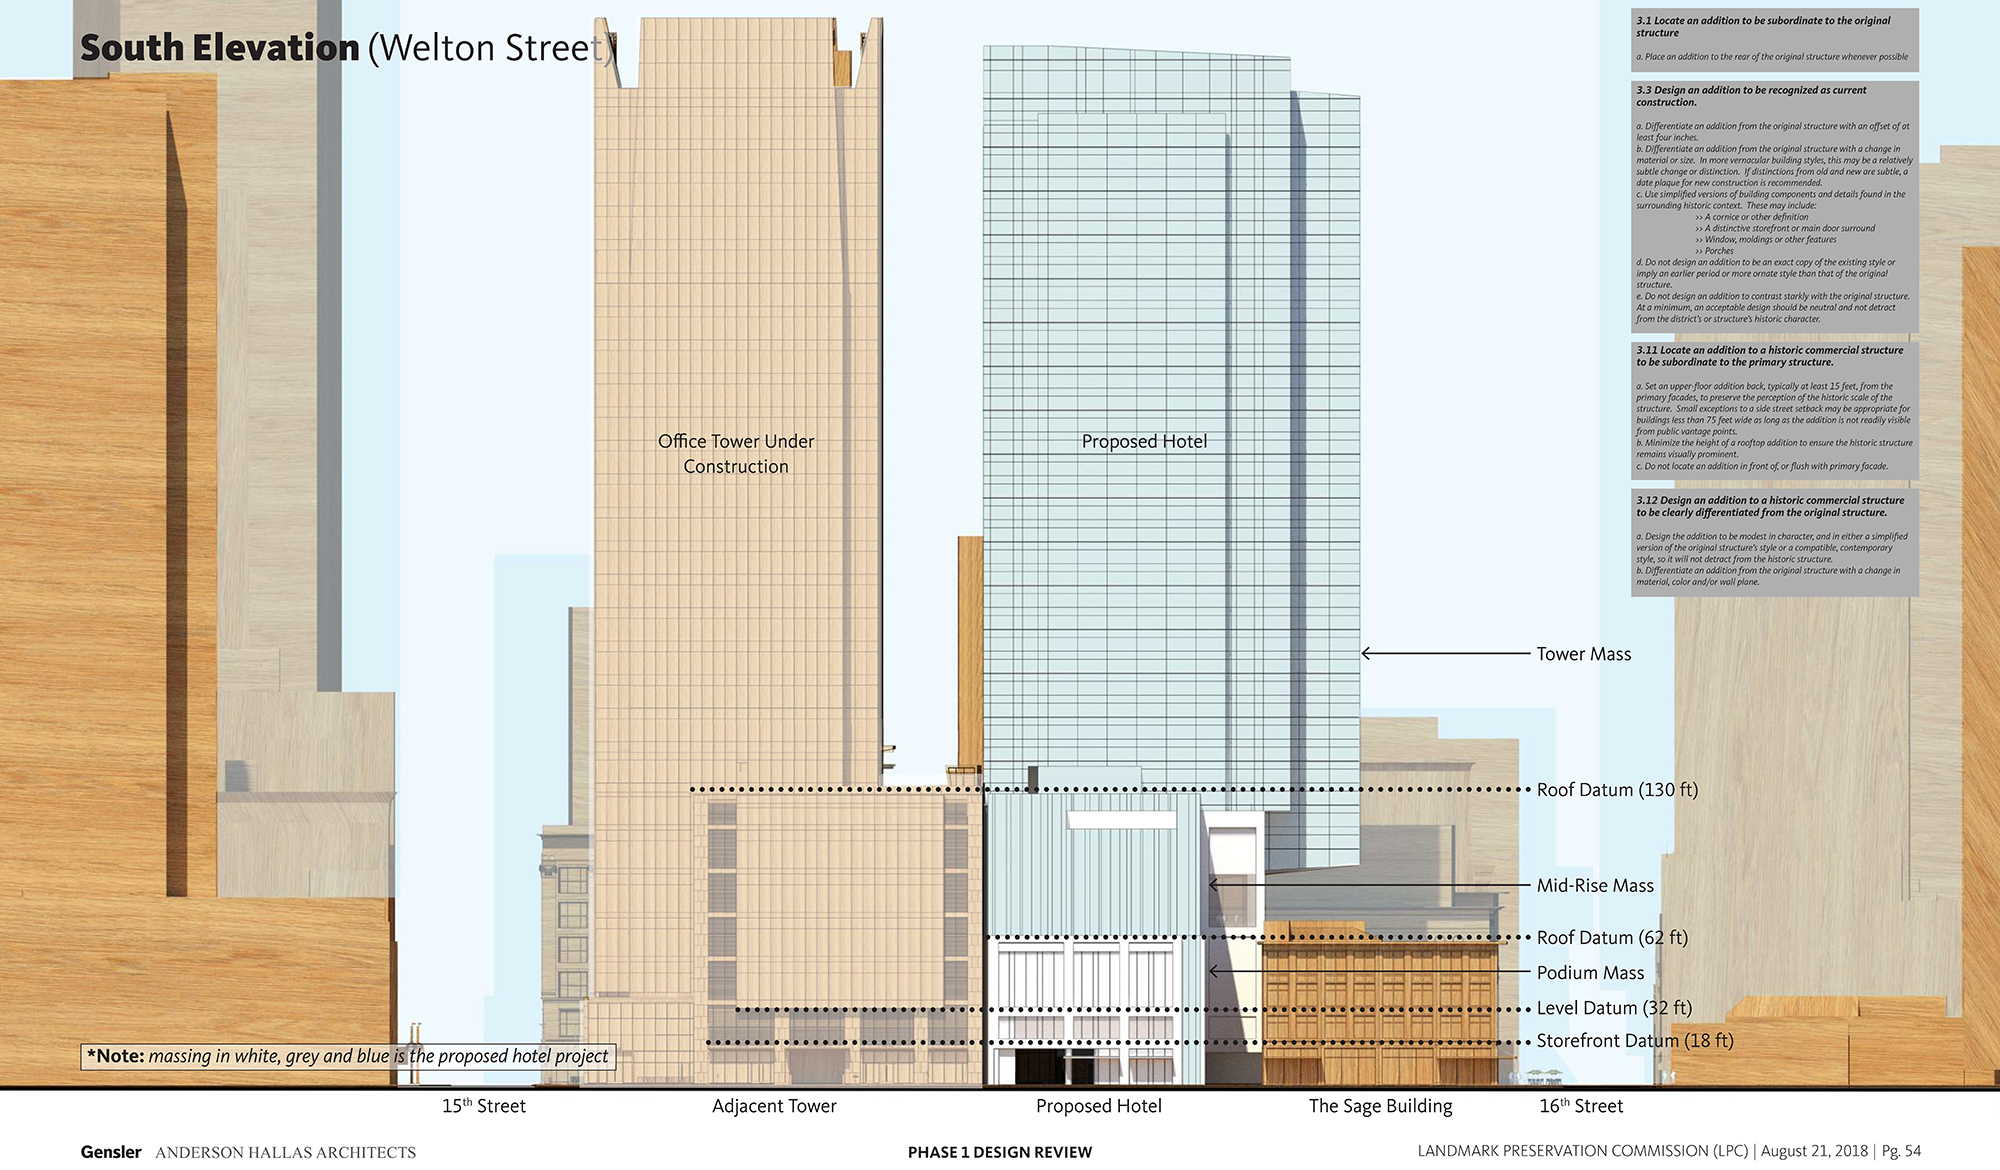 Proposed south elevation of Block 162 hotel, courtesy Gensler/Anderson Hallas Architects